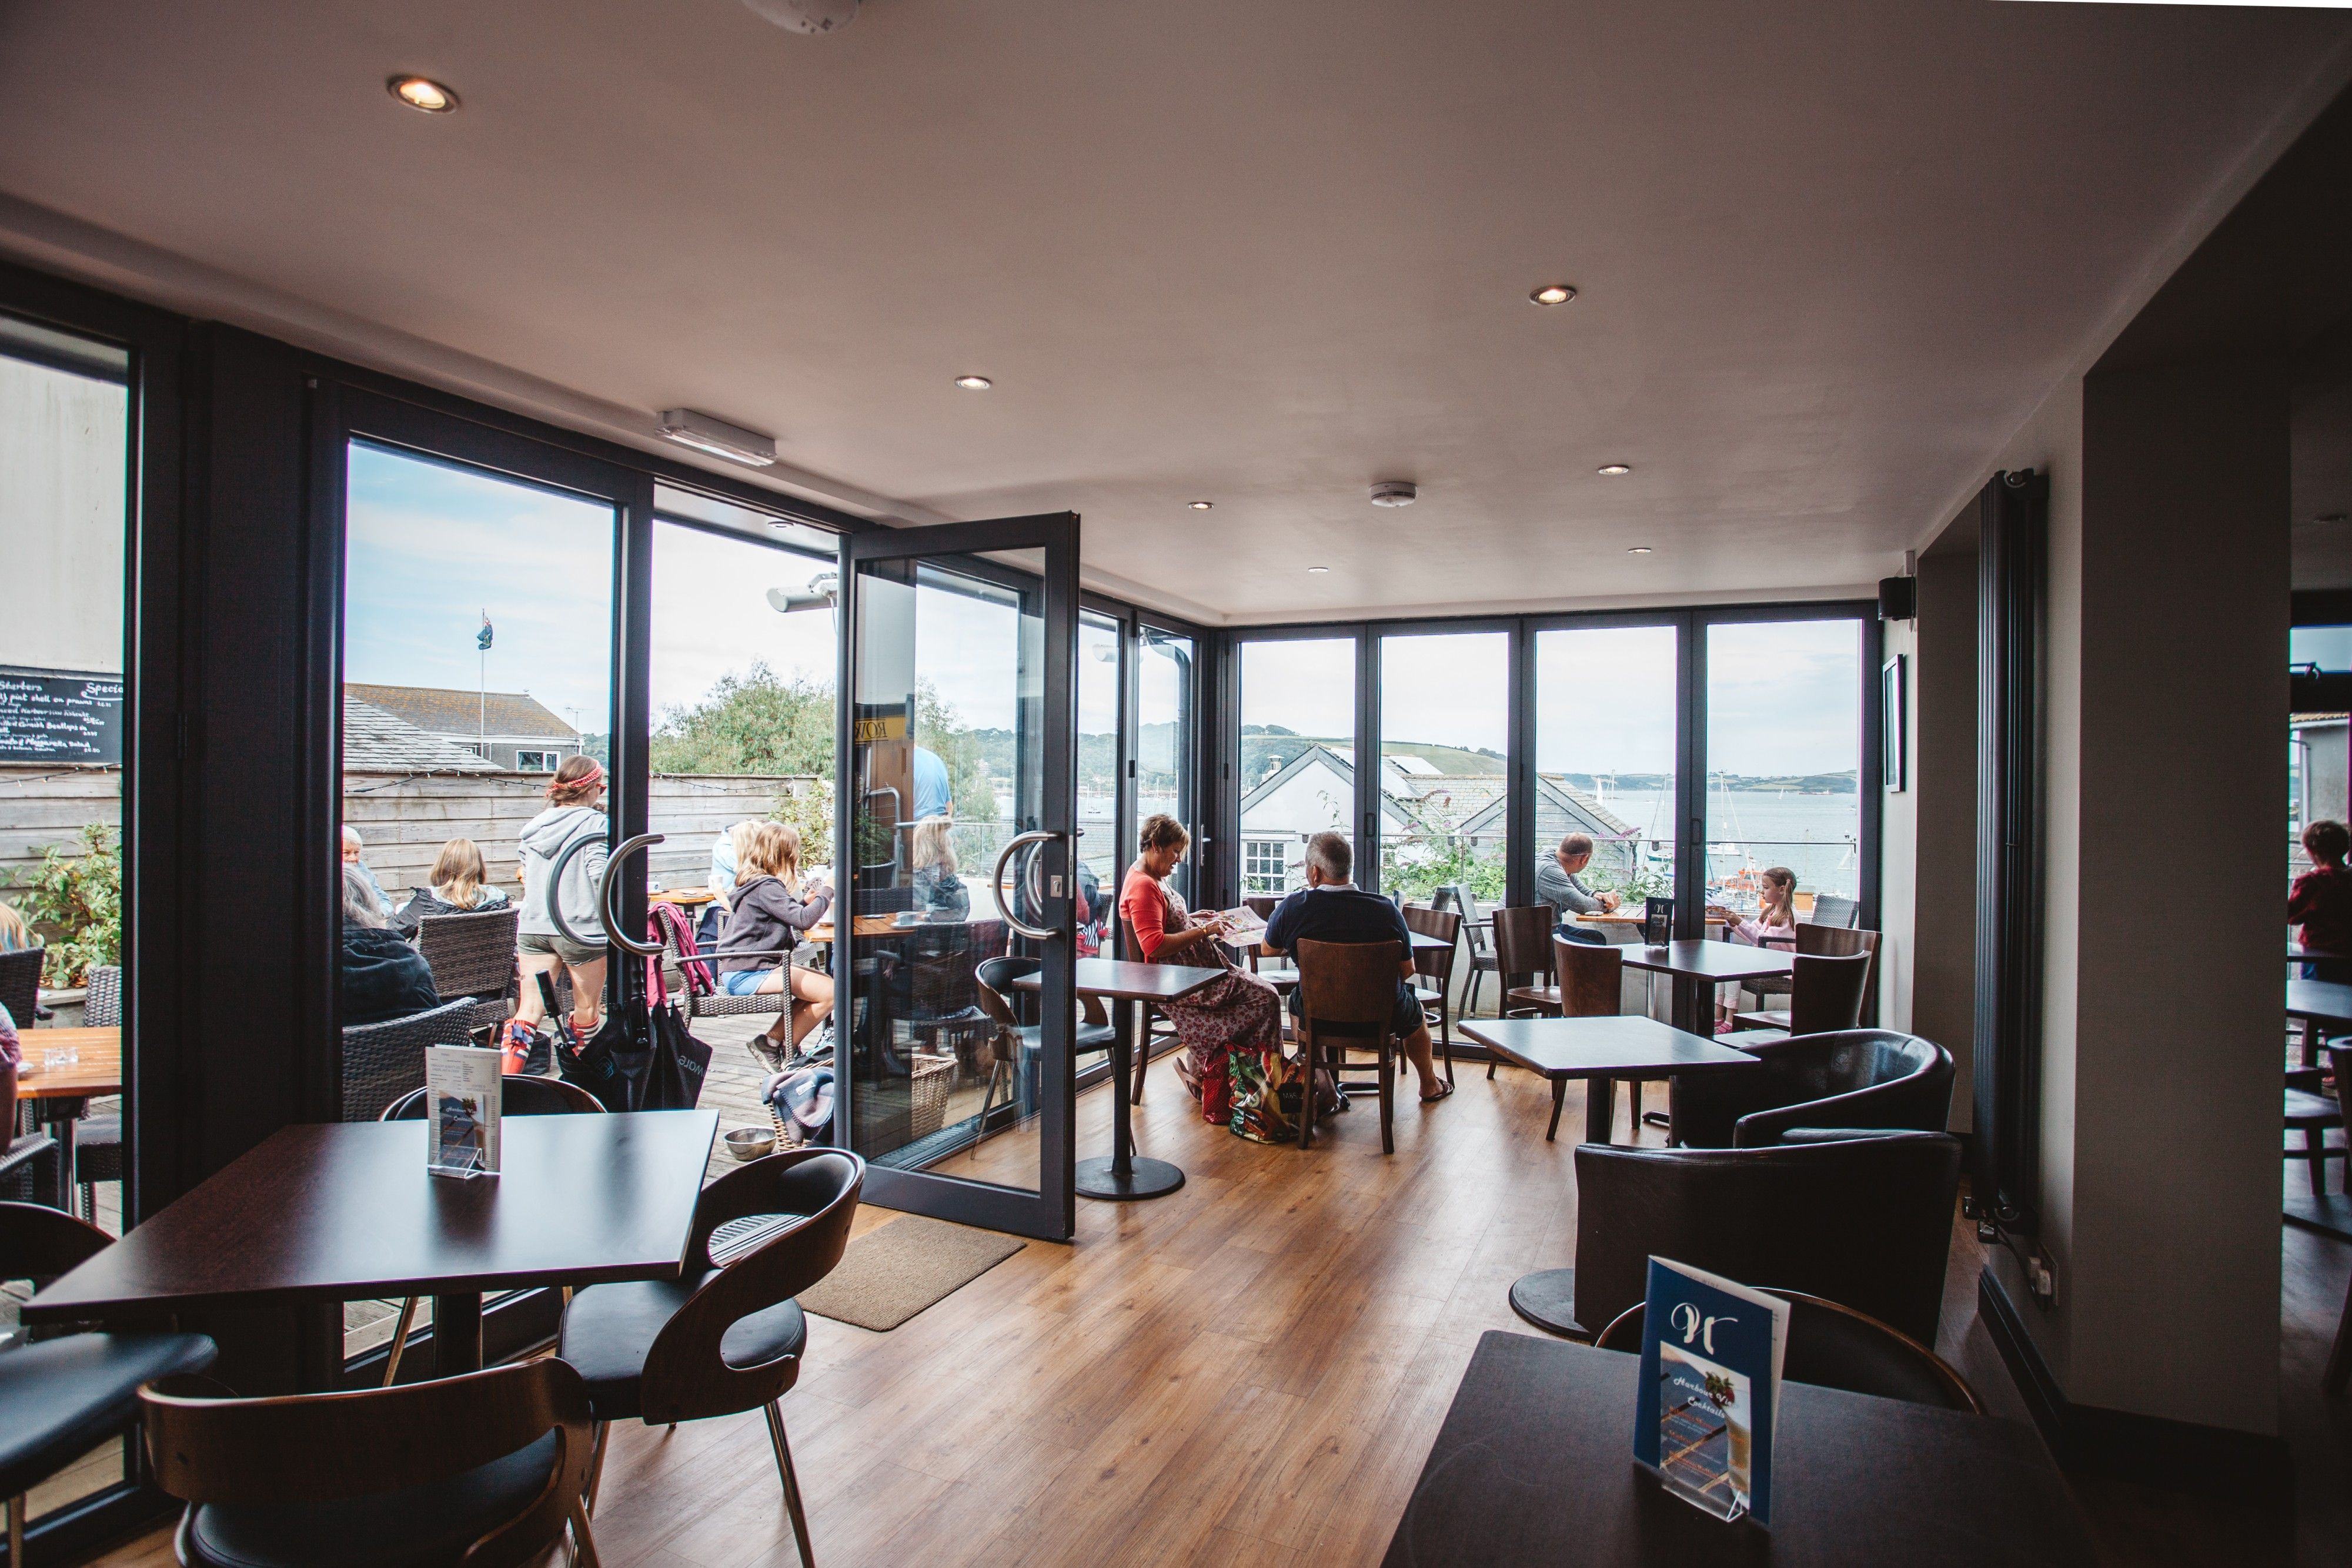 open interior which merges with the outdoor seating by the use of large glass windows and bi fold doors to give the cafe a welcoming feel - Large Cafe Interior